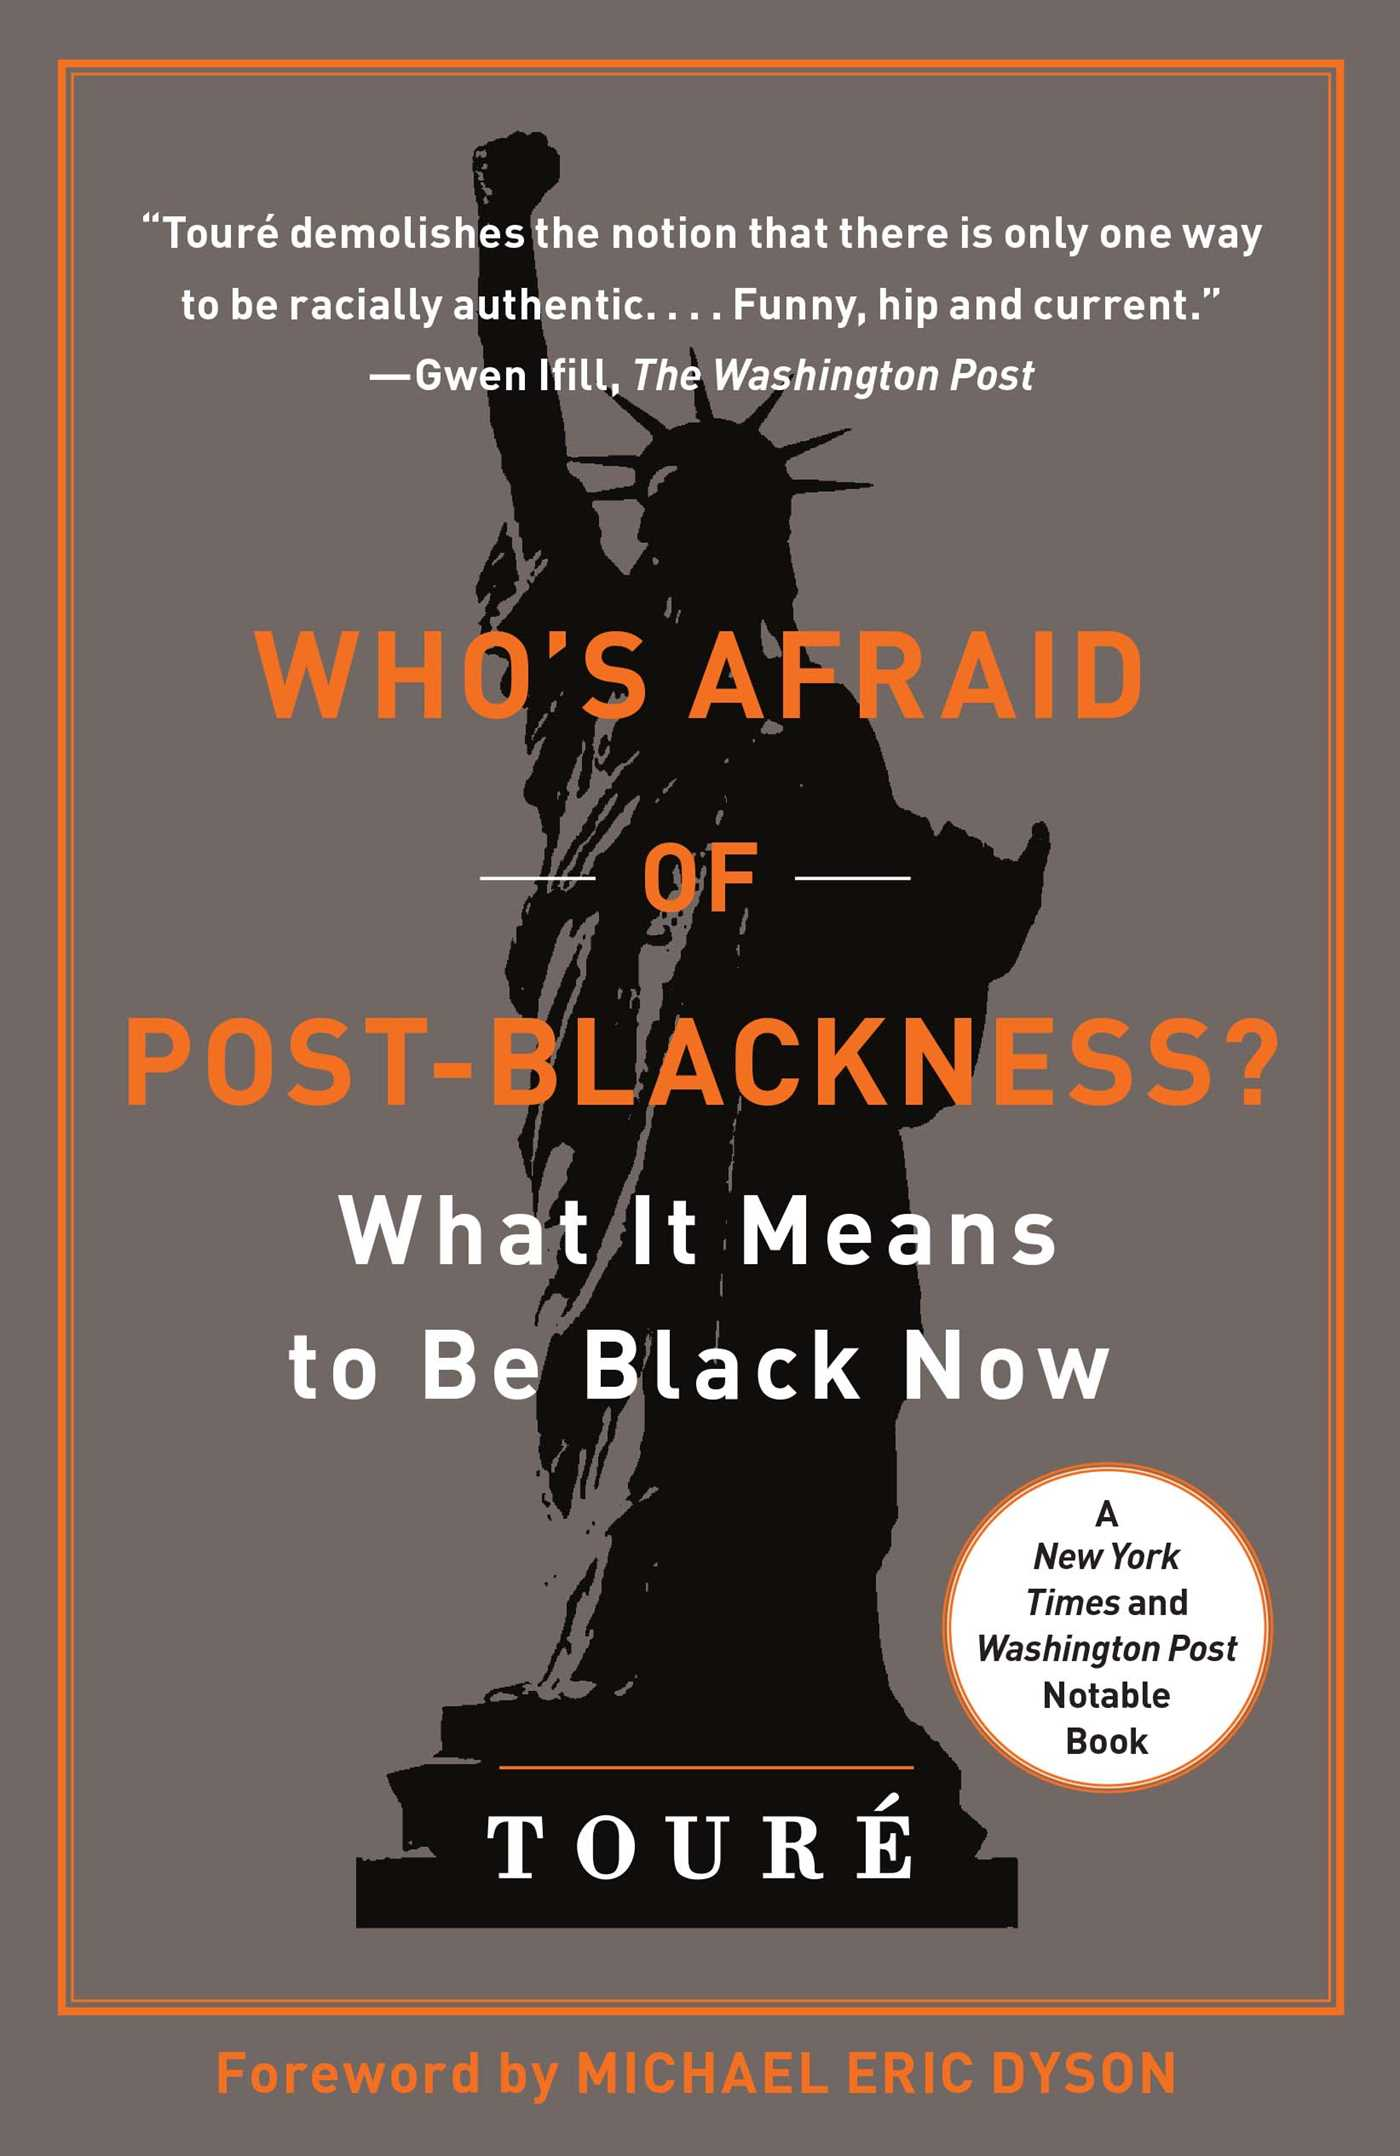 Whos-afraid-of-post-blackness-9781439177570_hr